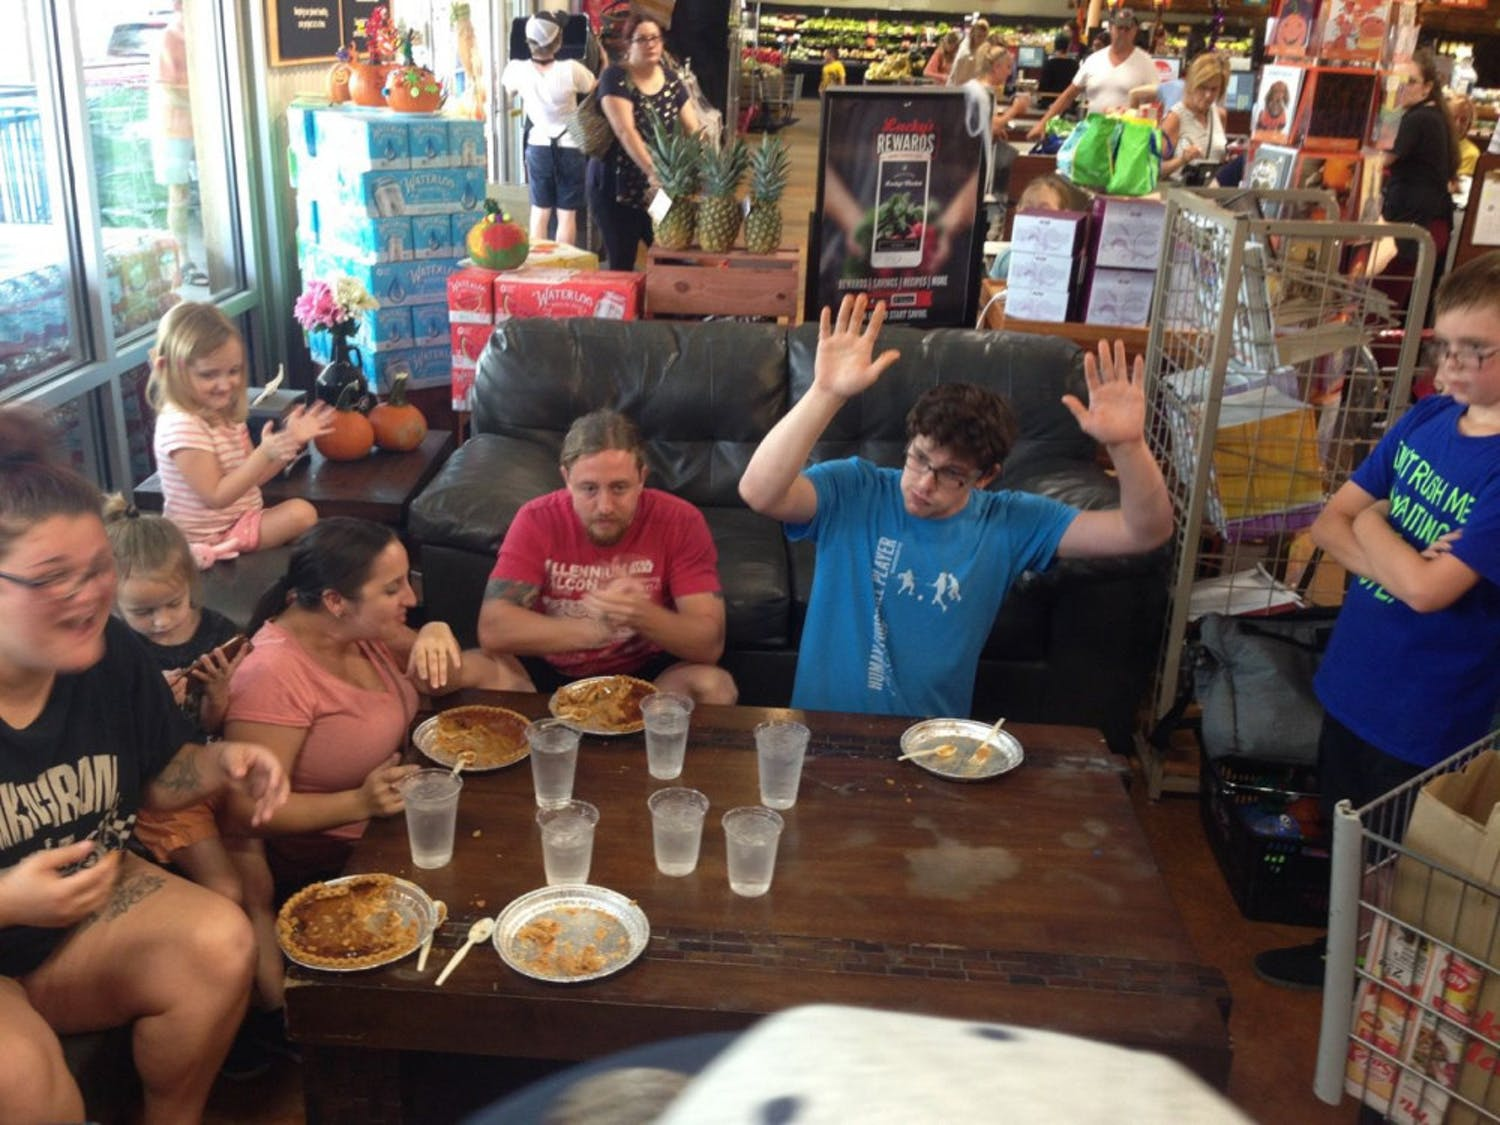 Steven Edvalson raises his hands in victory after finishing his pumpkin pie on Sunday at Lucky's Market. Edvalson ate his pie in fewer than seven minutes during a pie-eating contest at the grocery store.